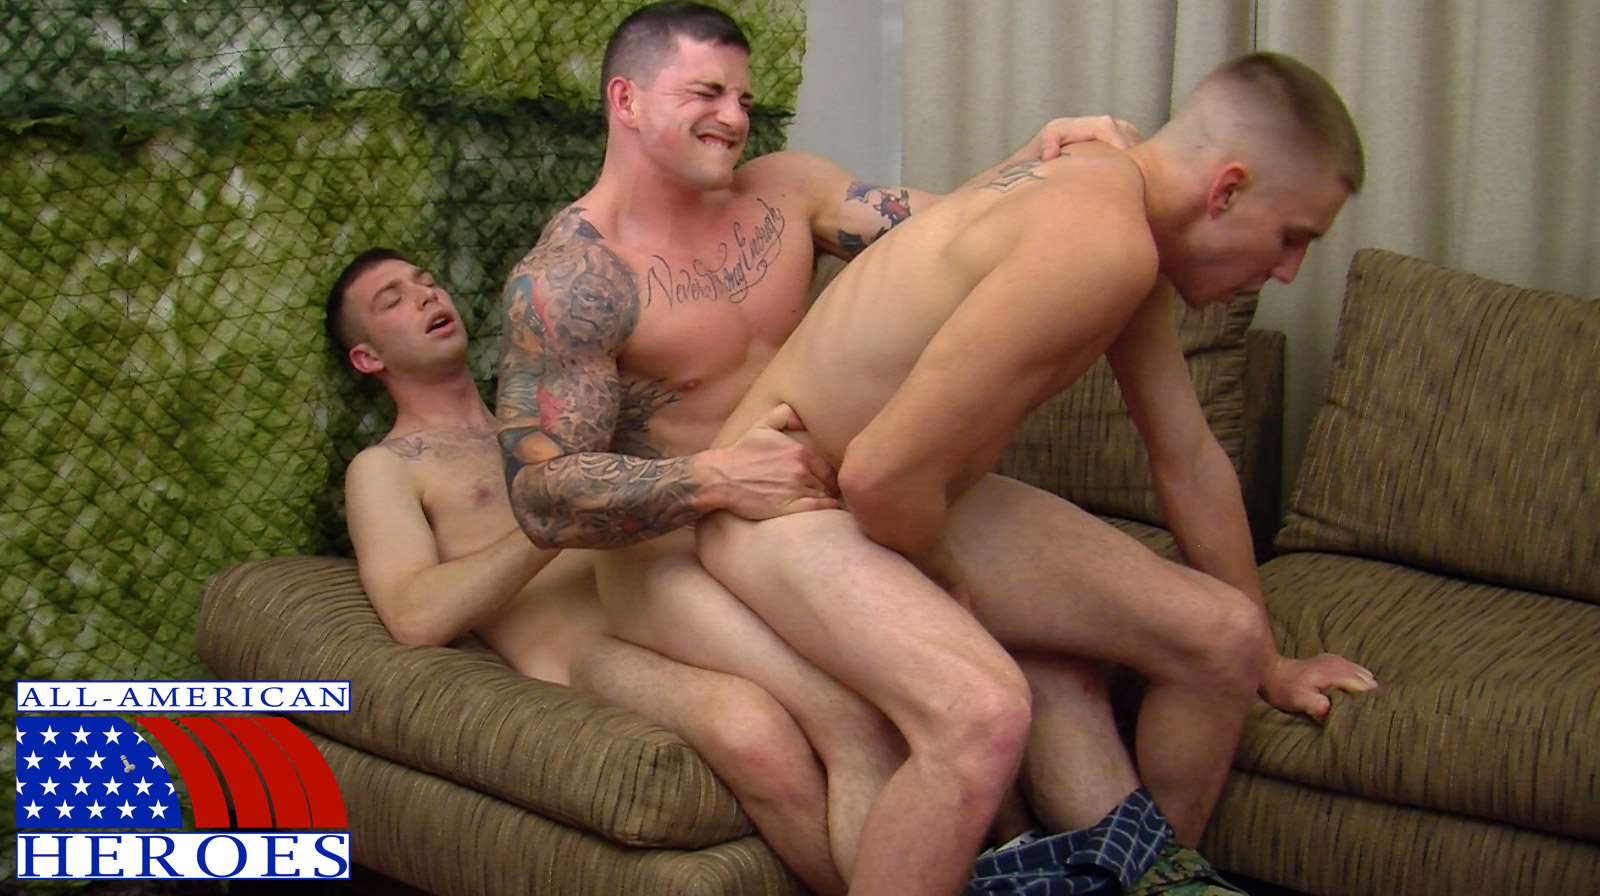 Army gay porn videos